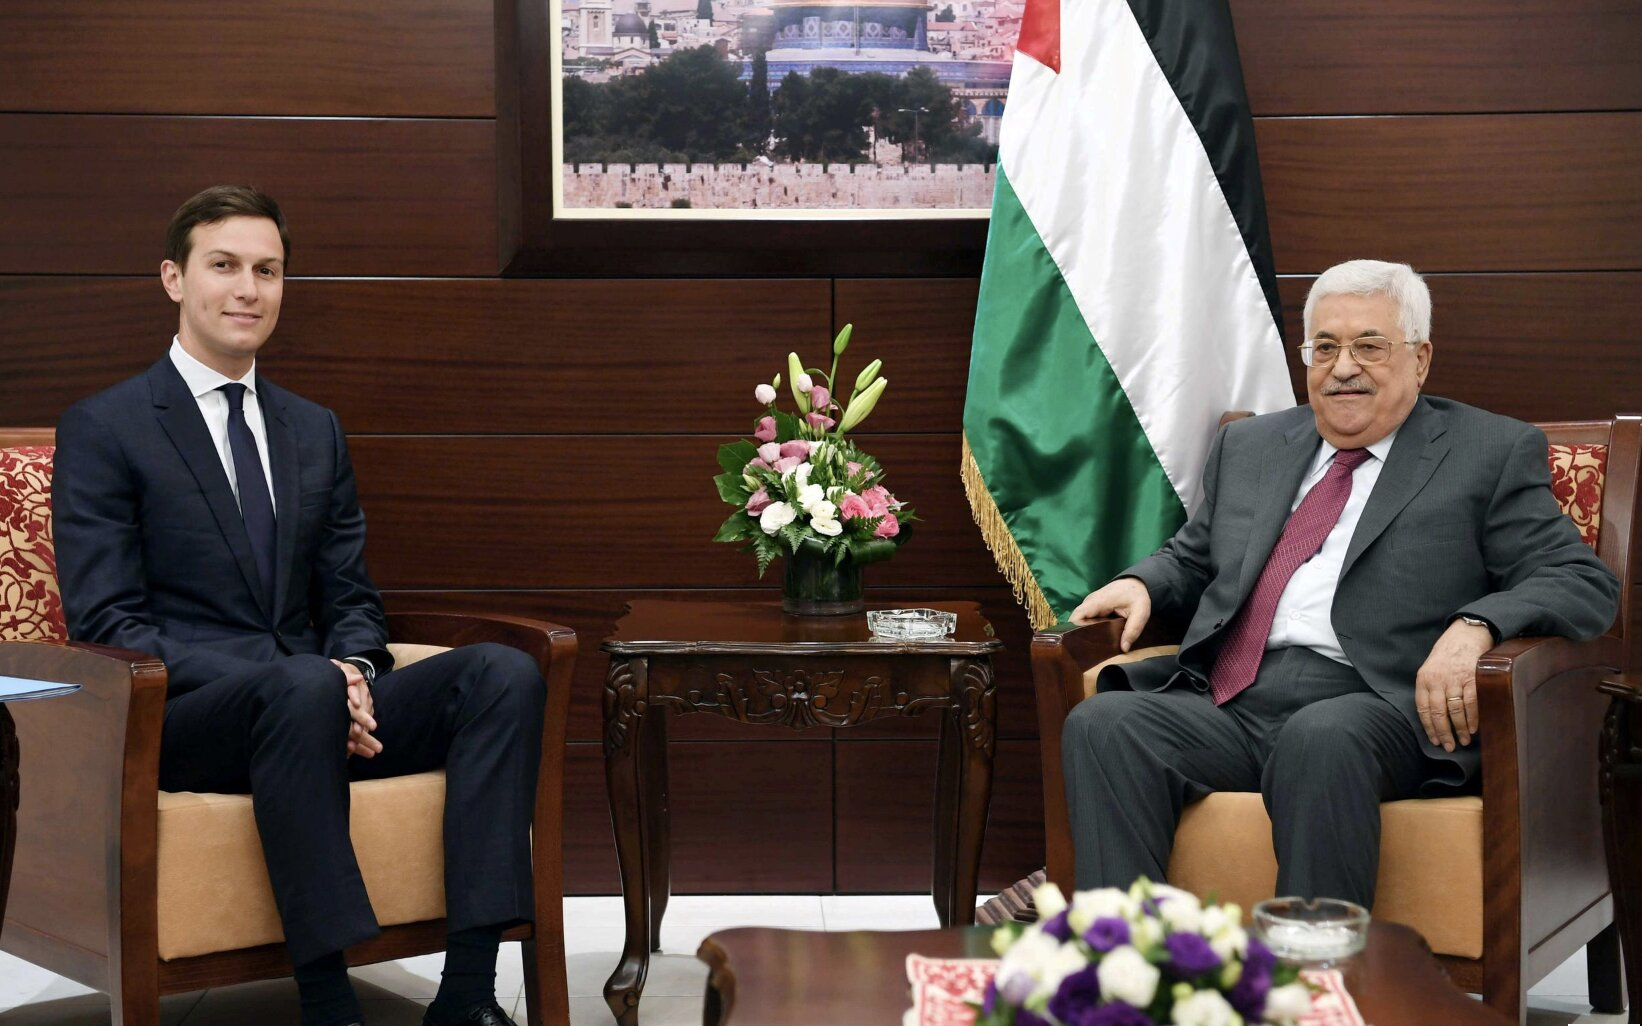 Palestinians say U.S. 'deal of the century' will finish off their state